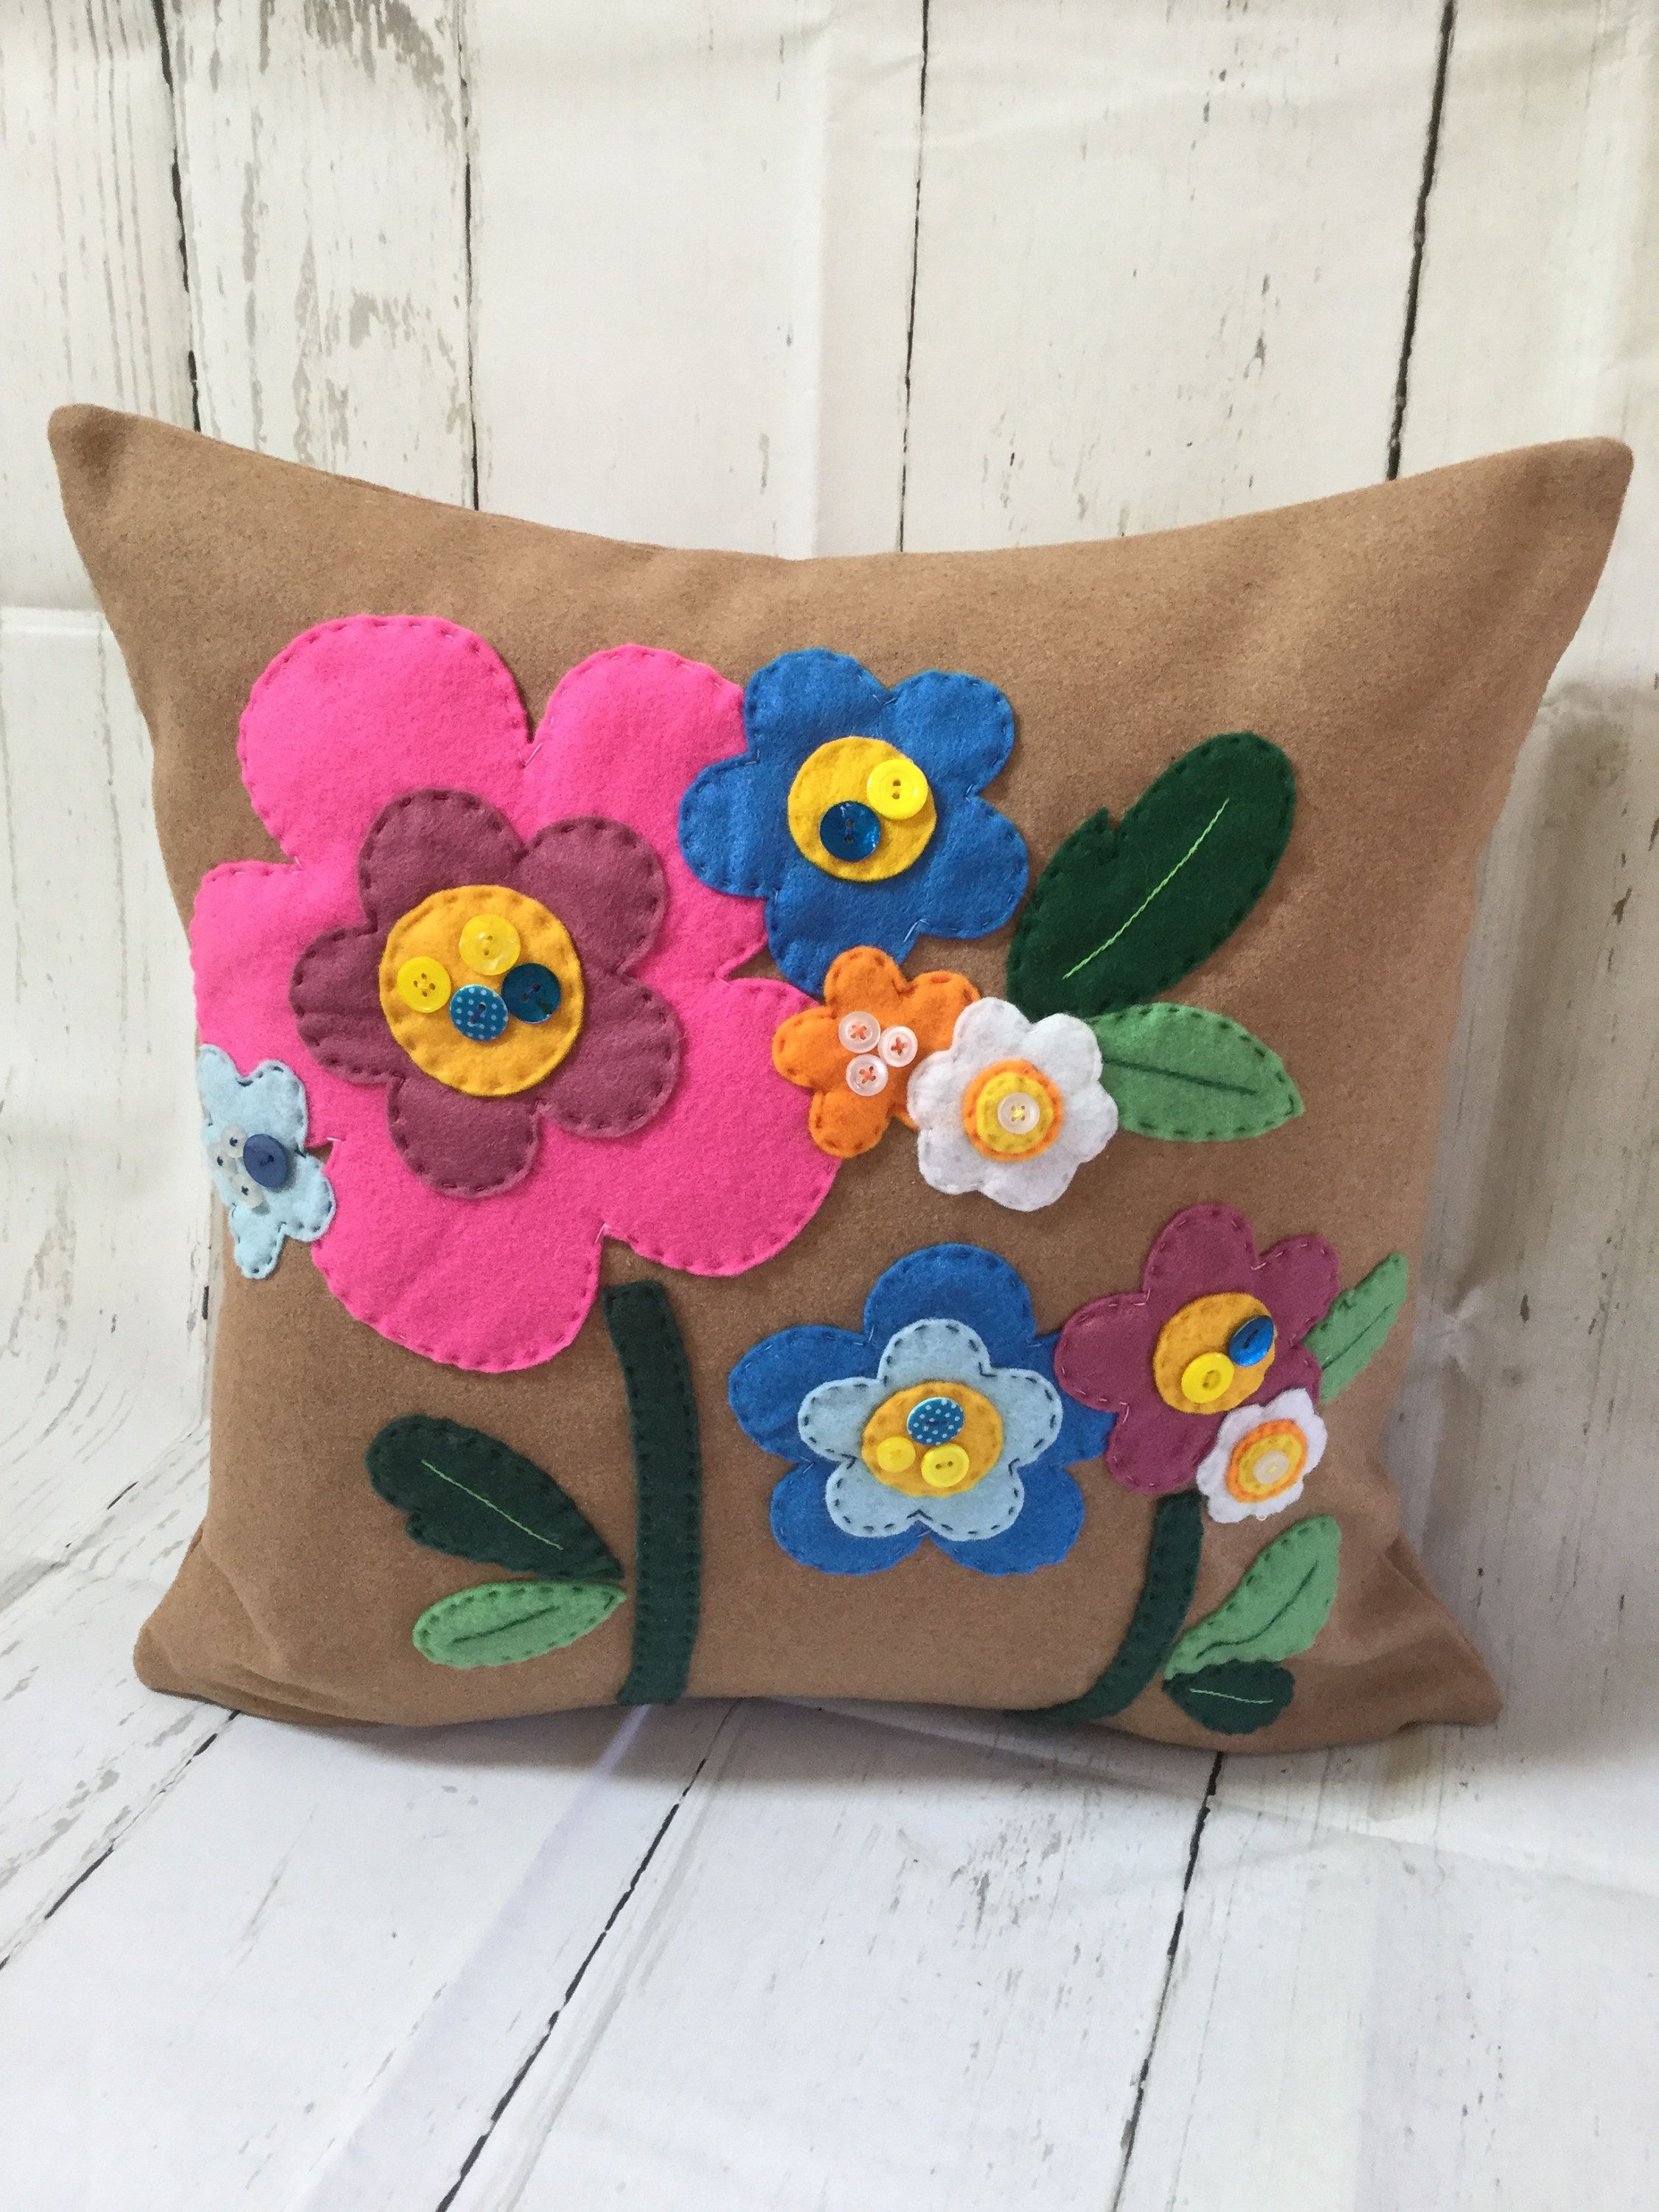 Wool Felt Cushion With Applique Flowers And Button Embellishments By